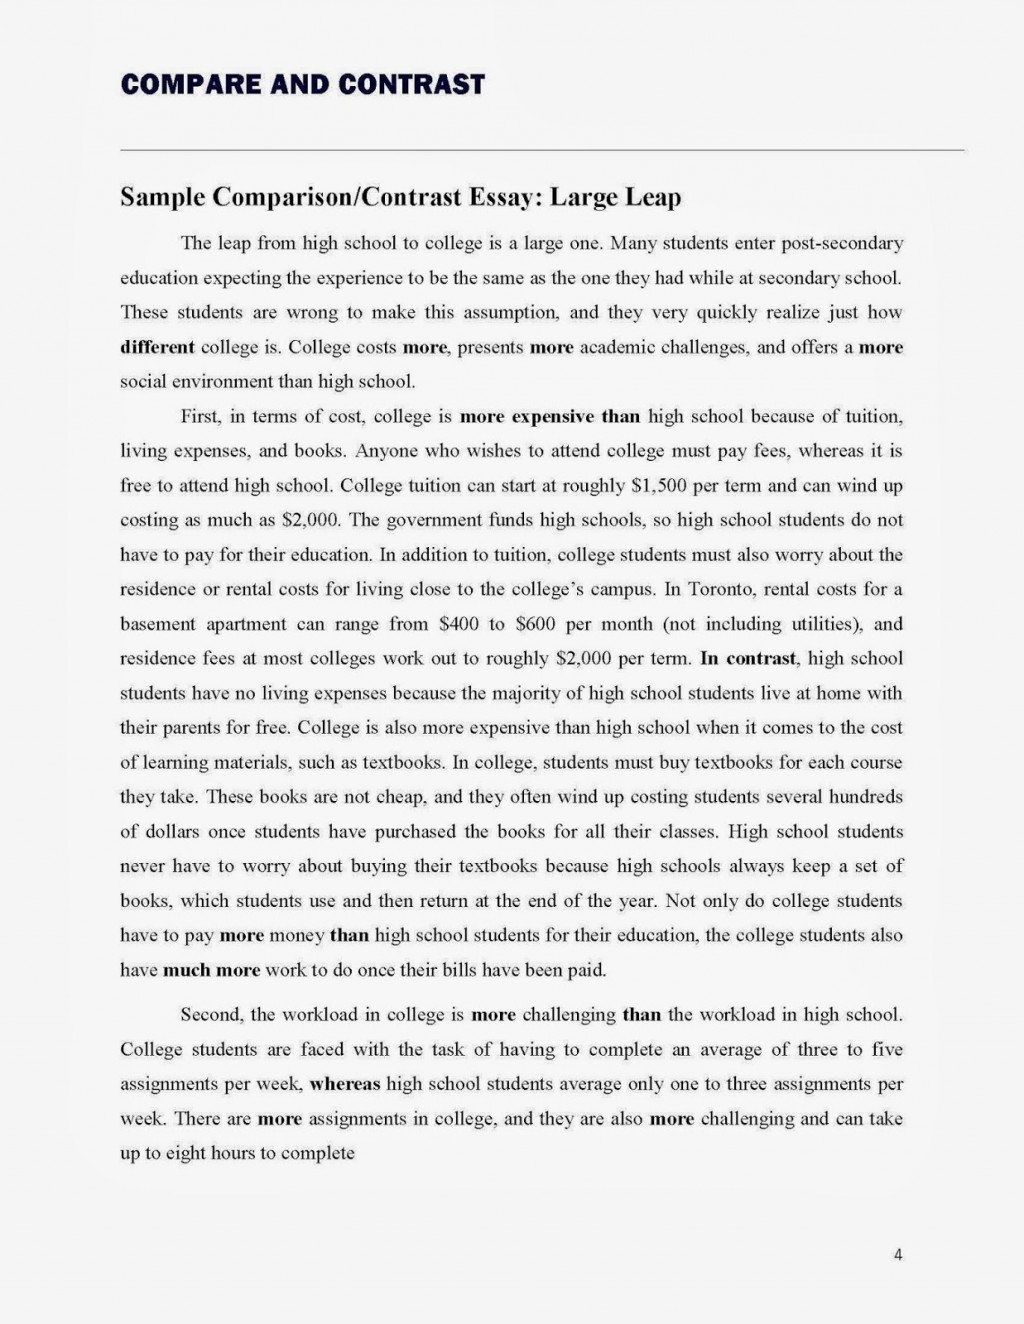 009 Compare20and20contrast20essay Page 4 Good Compare And Contrast Essay Topics Exceptional For Elementary Students In The Medical Field Large